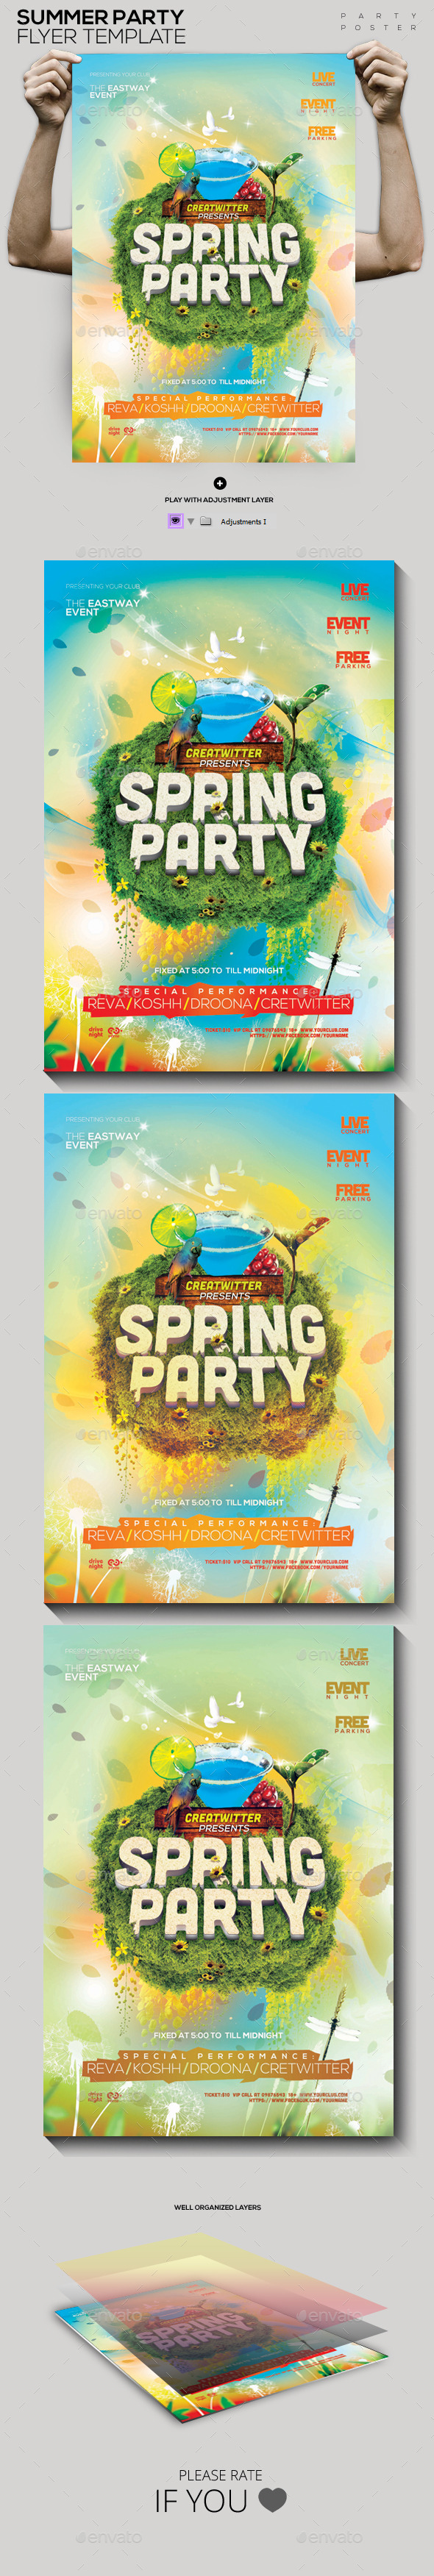 Spring Party Template PSD Flyer/Poster